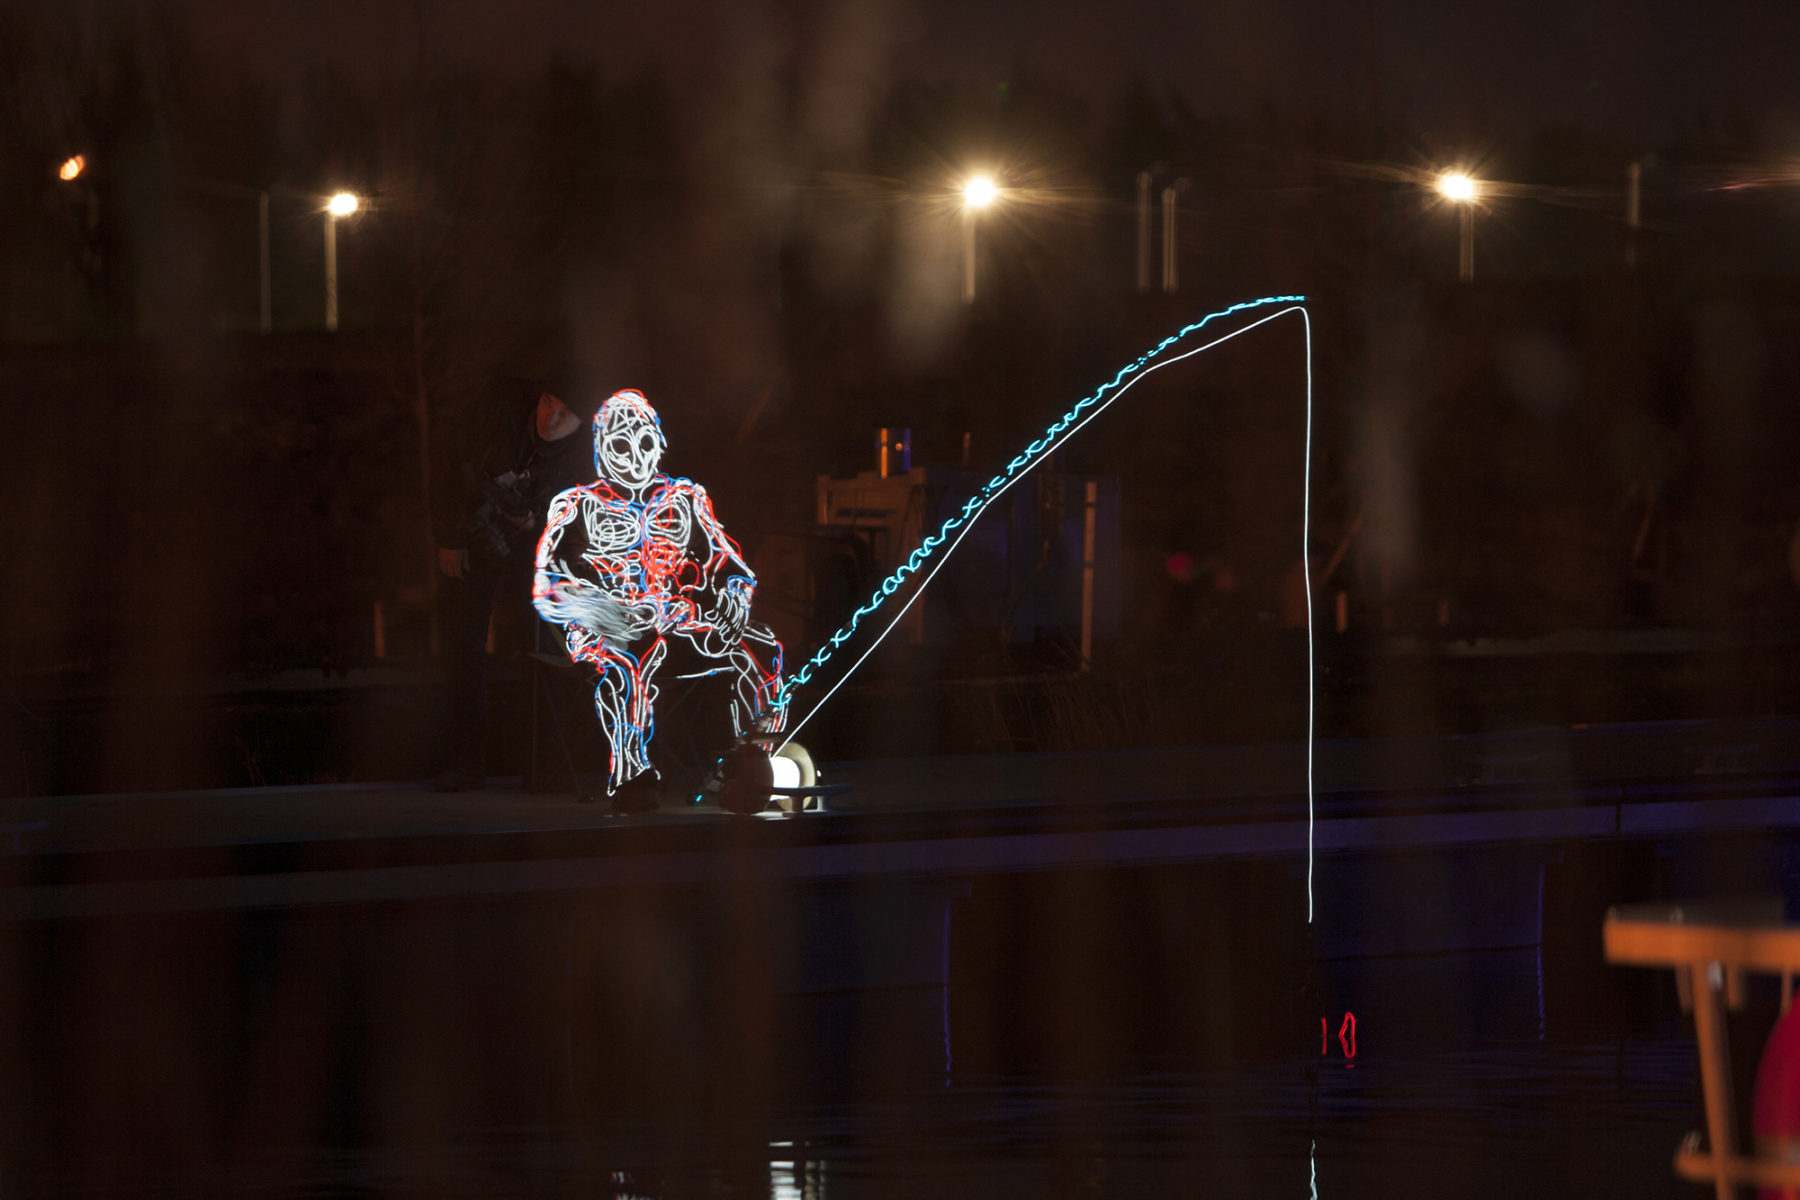 A light show performance, fishing | by McAteer Photograph